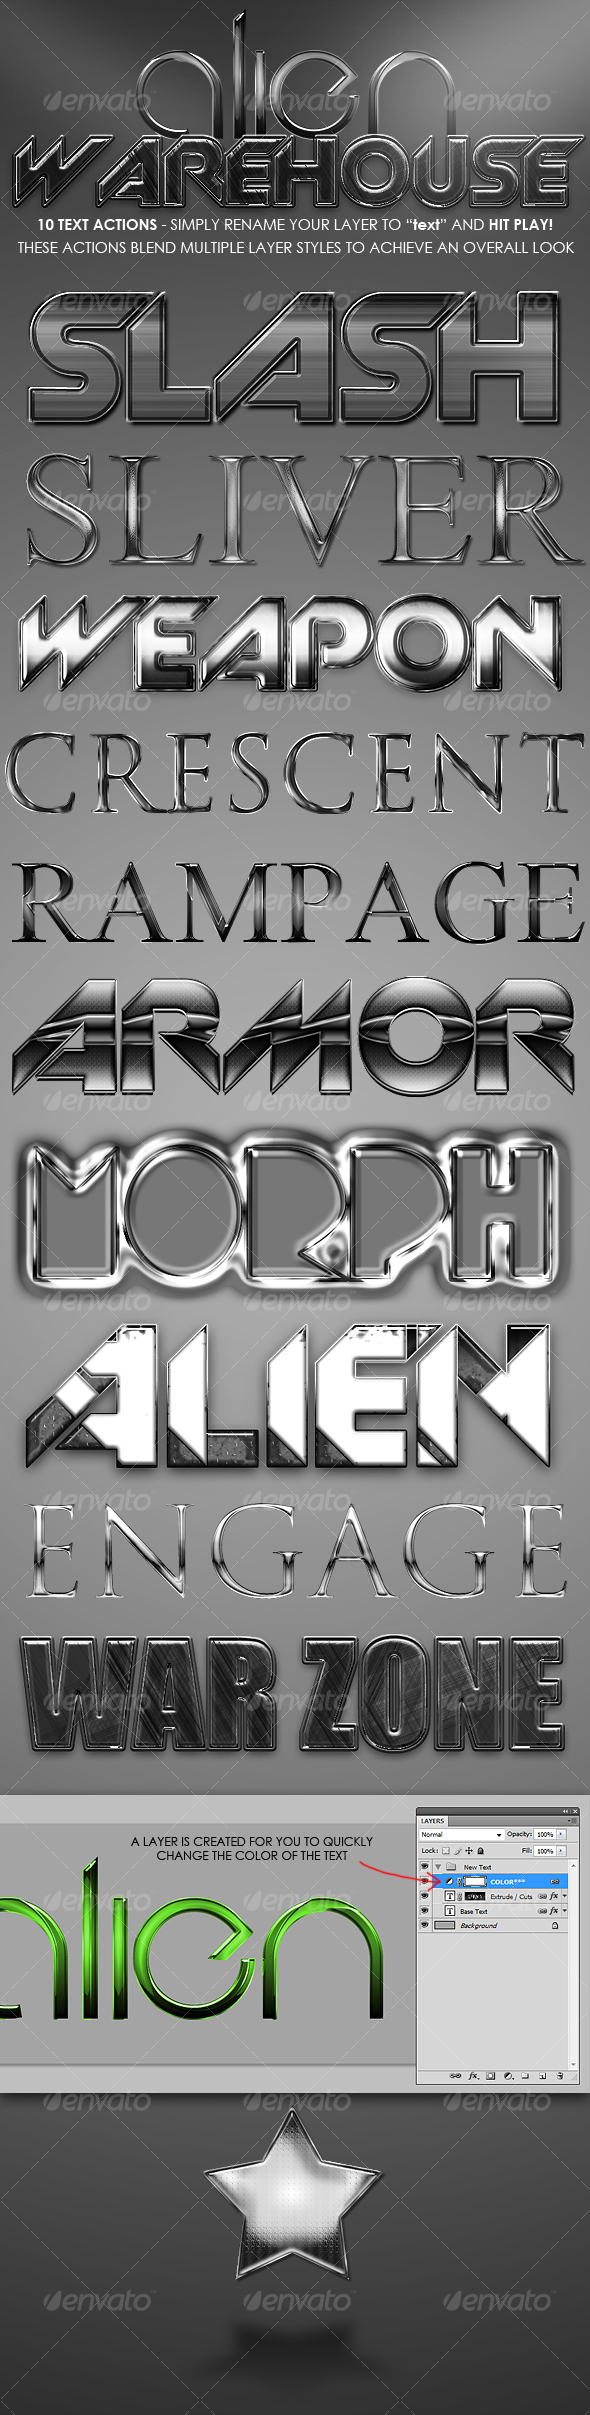 GraphicRiver Alien Warehouse Text Actions 109486